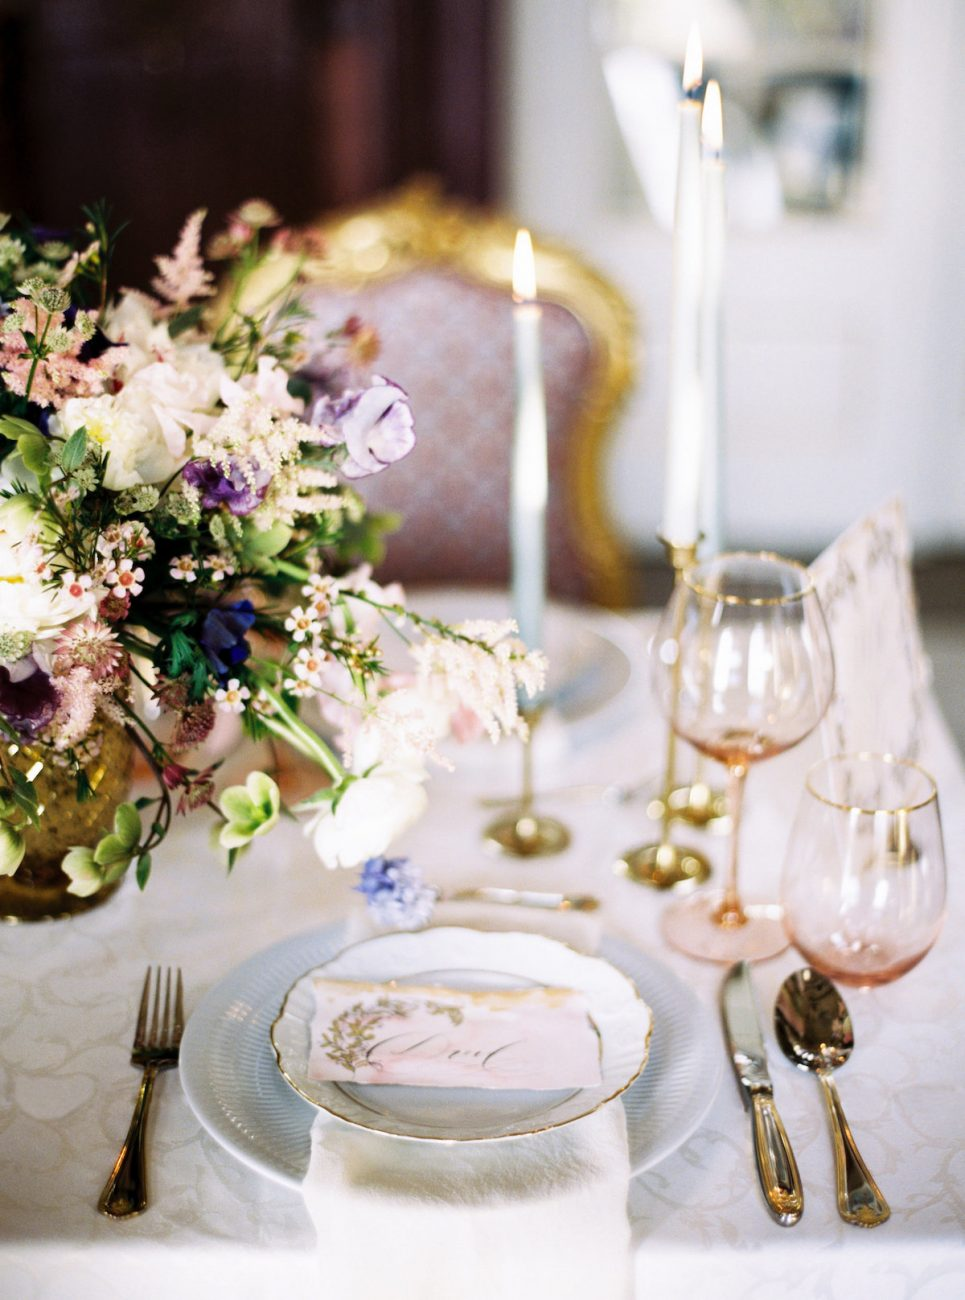 Palace Wedding Inspiration - pink place name with gold hand painted designs on plate